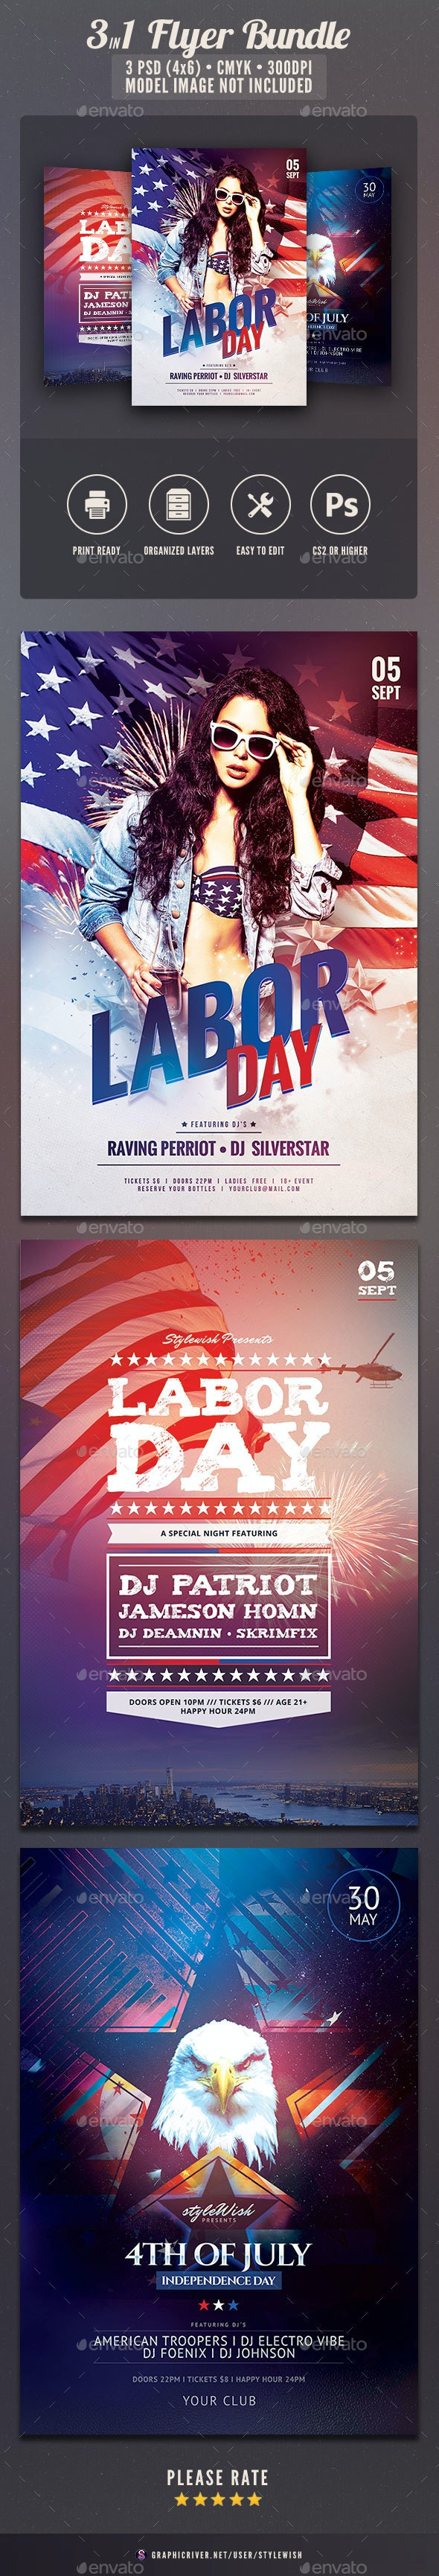 Labor Day Flyer Bundle - Clubs & Parties Events